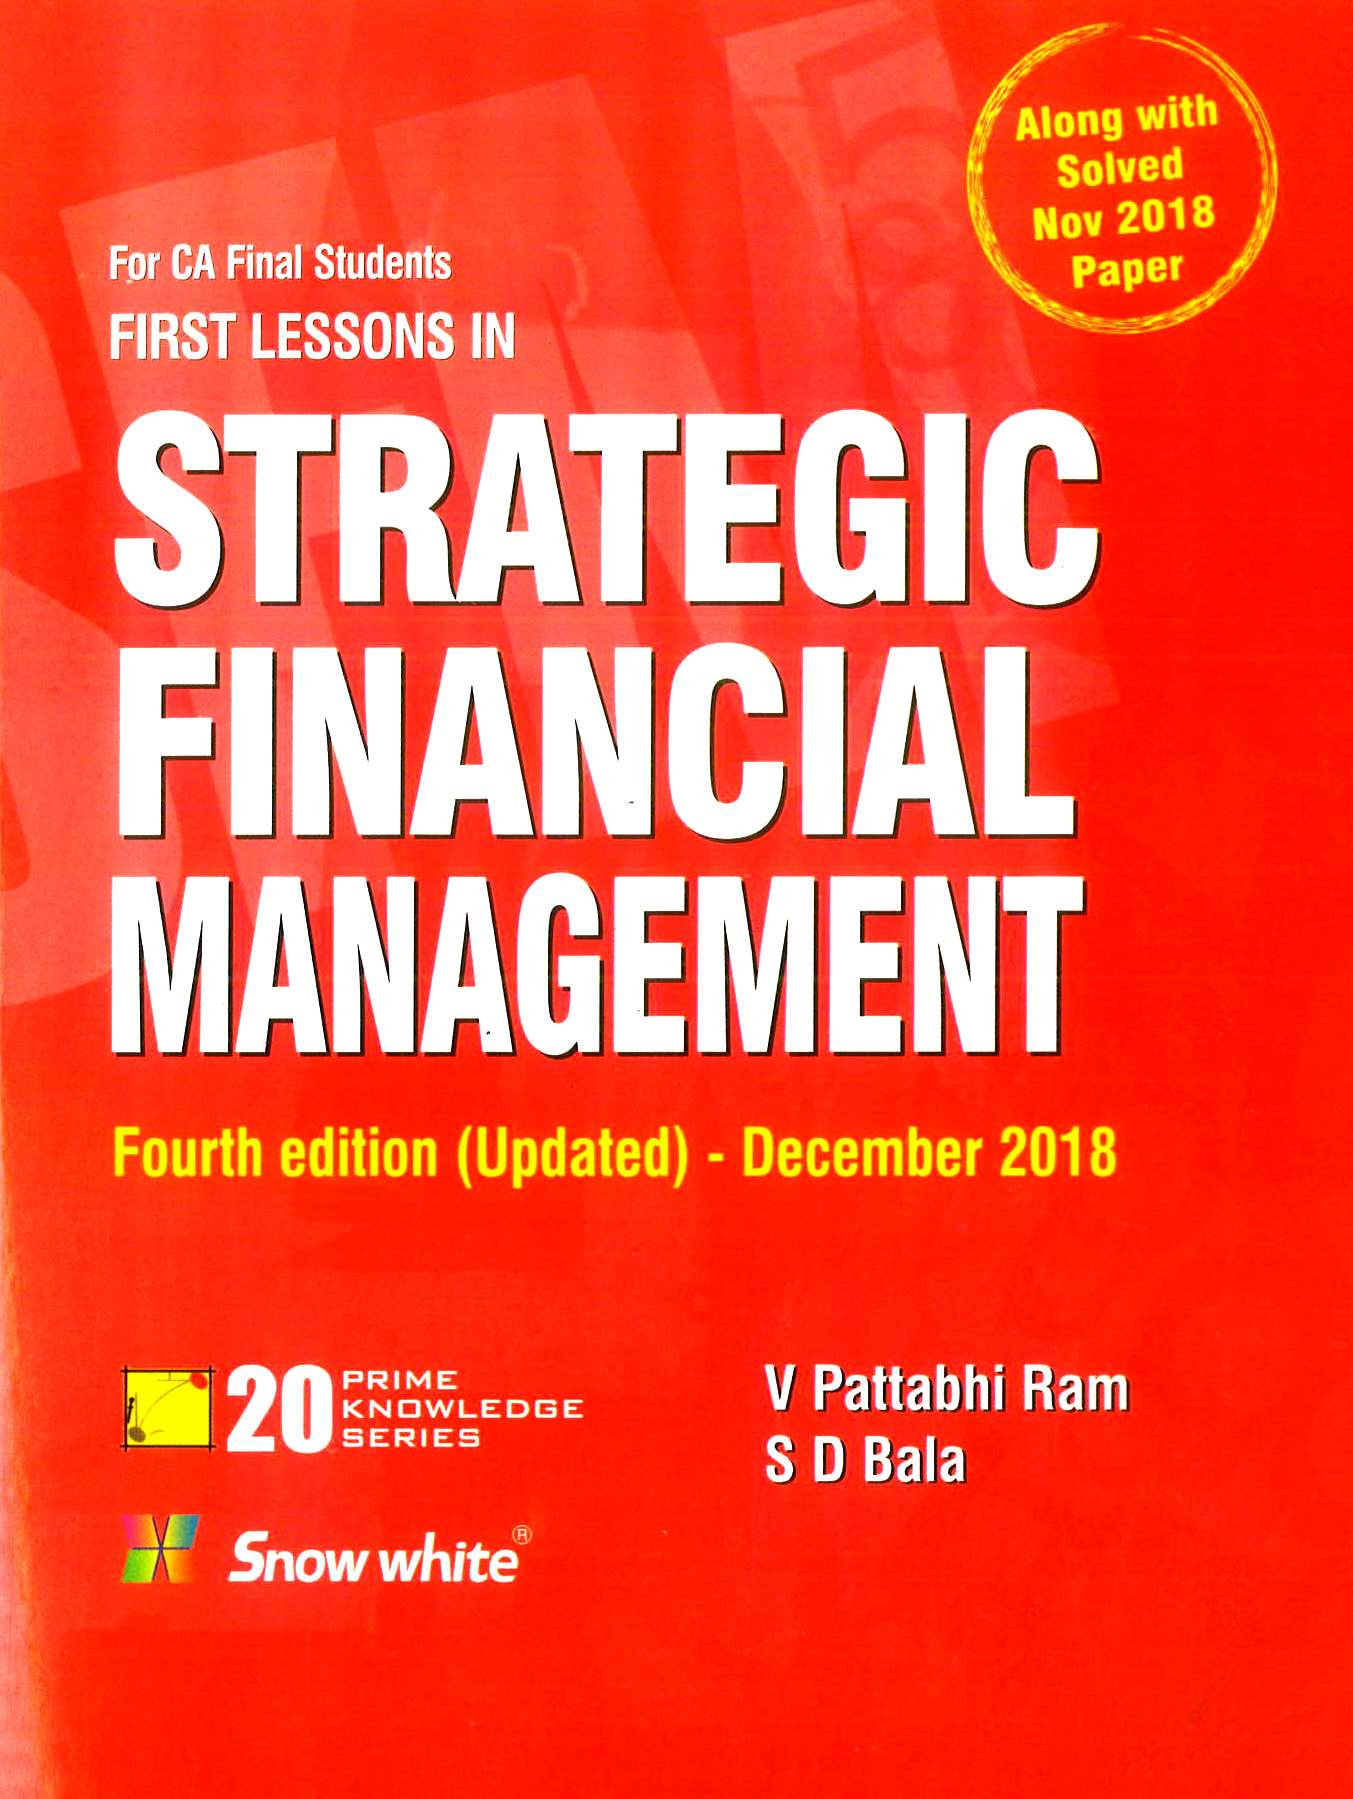 Snow White First Lessons in Strategic Financial Management for CA Final (Old Syllabus) by V Pattabhi Ram and S D Bala (Snow White Publishing) Edition 2018 for May 2019 Exam